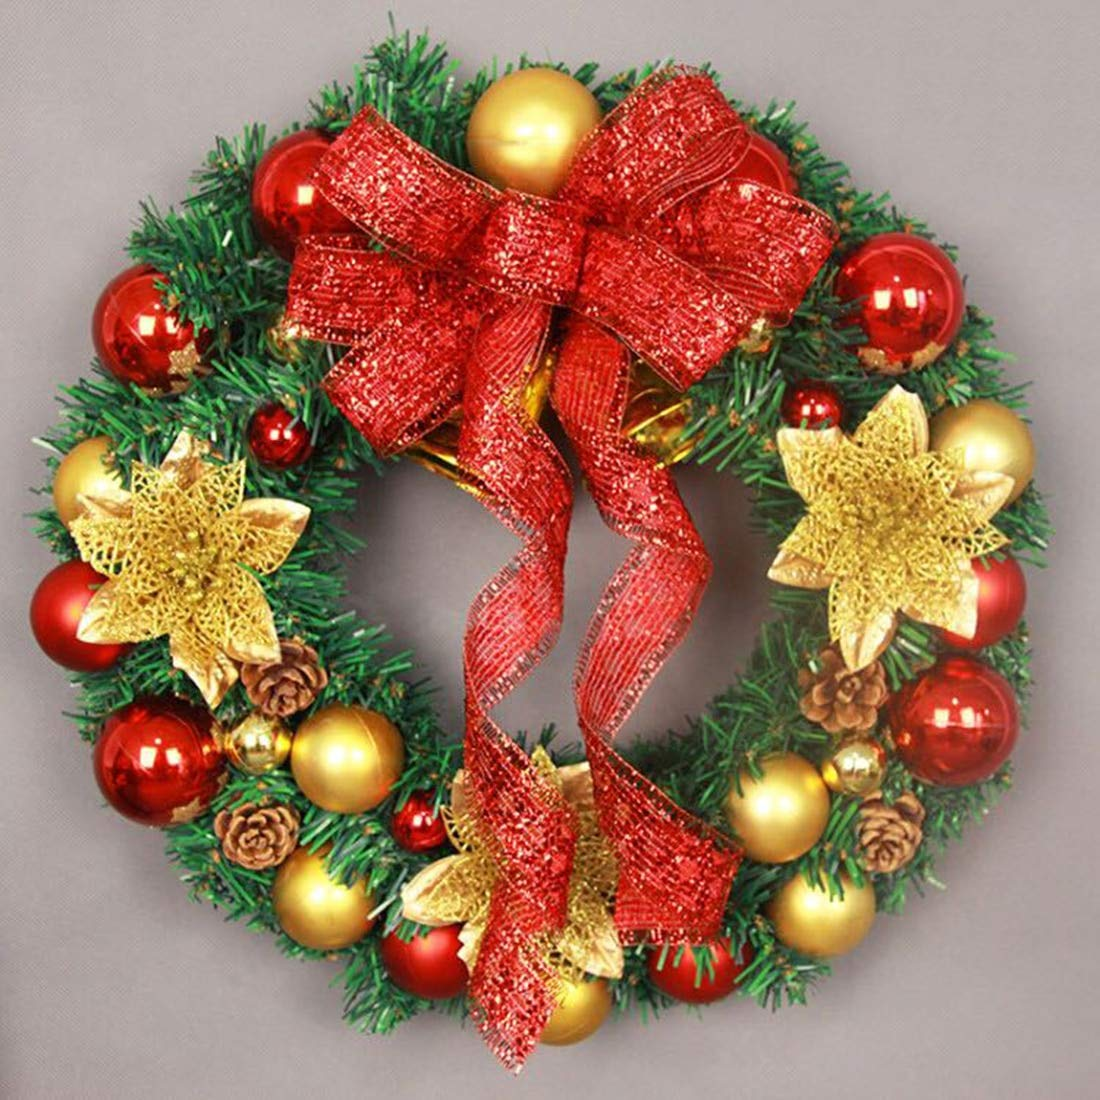 STORE-DECORATIVE - Christmas Decorations For Home Door and Window Decorations Christmas wreath Luxury Merry Christmas Party Ball Bell Garland